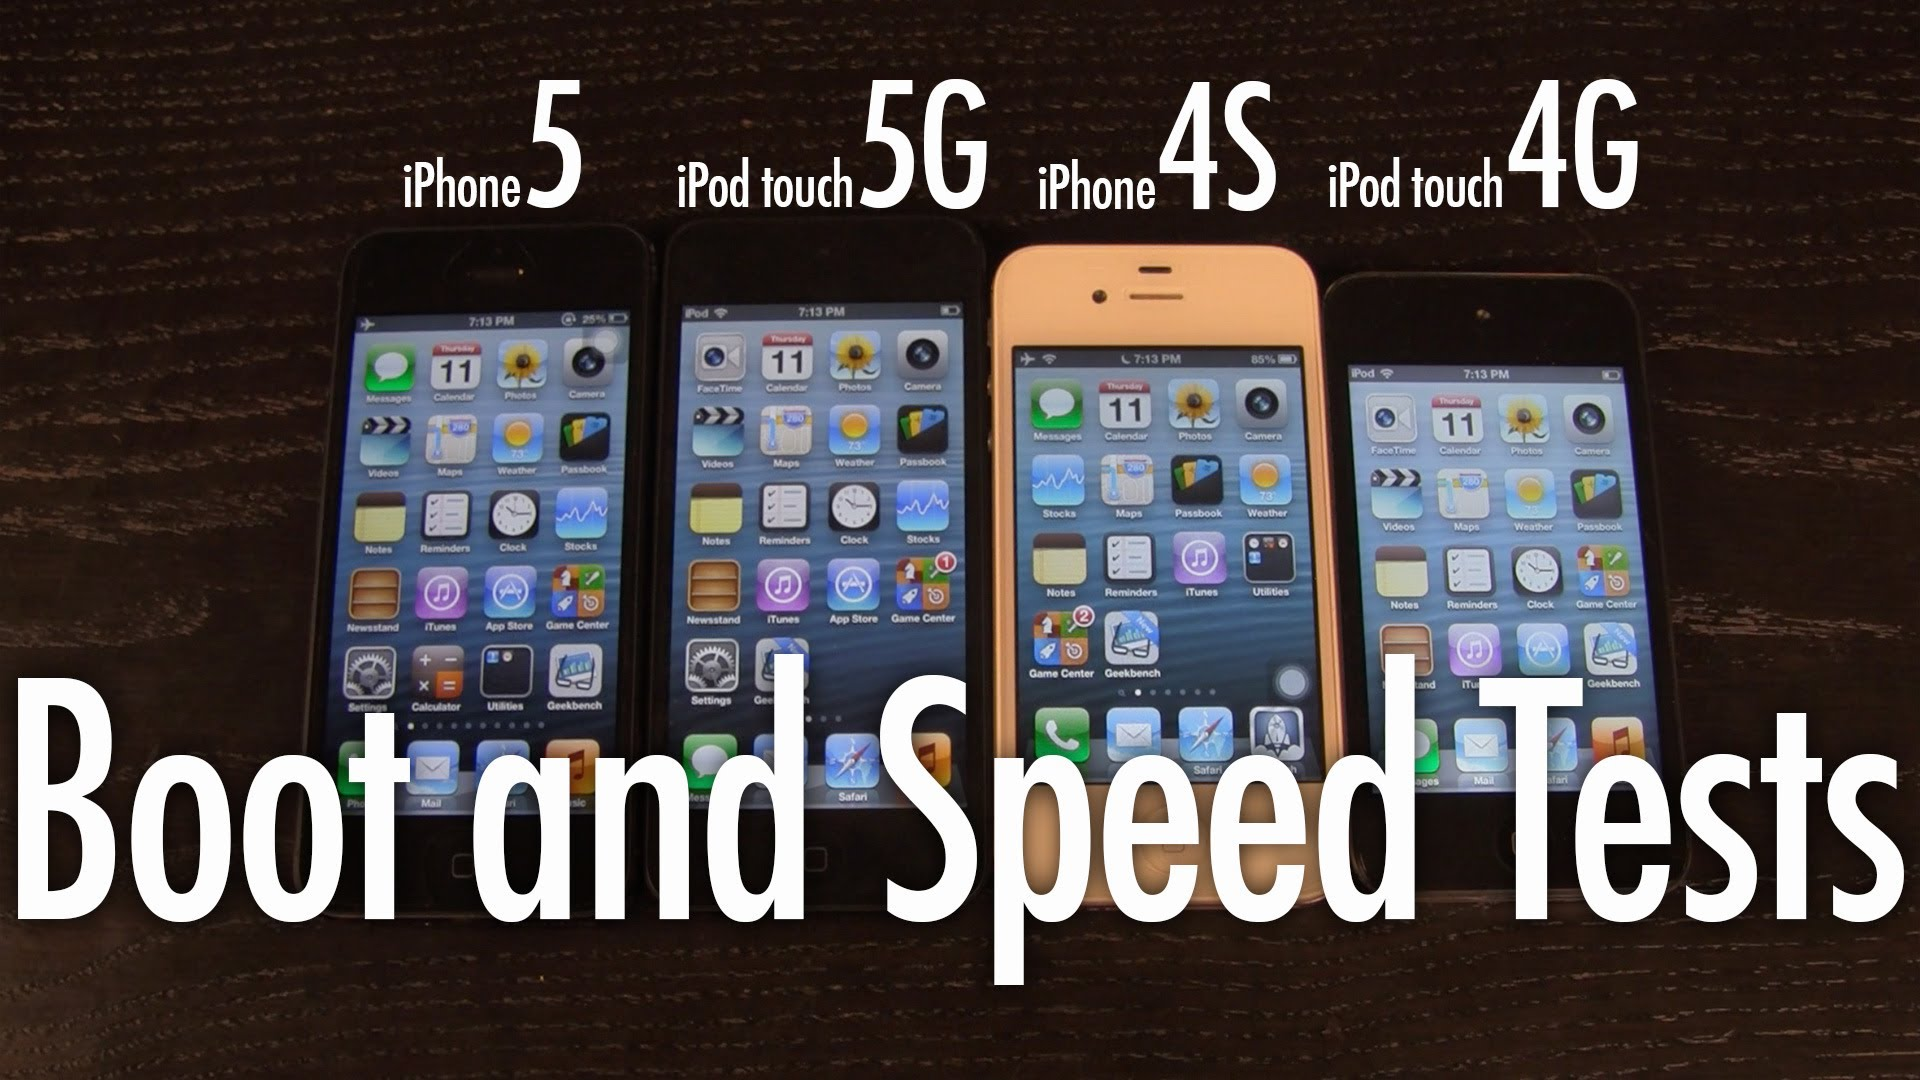 iPhone 4S iPhone 4 iPhone 5 iPhone 5G